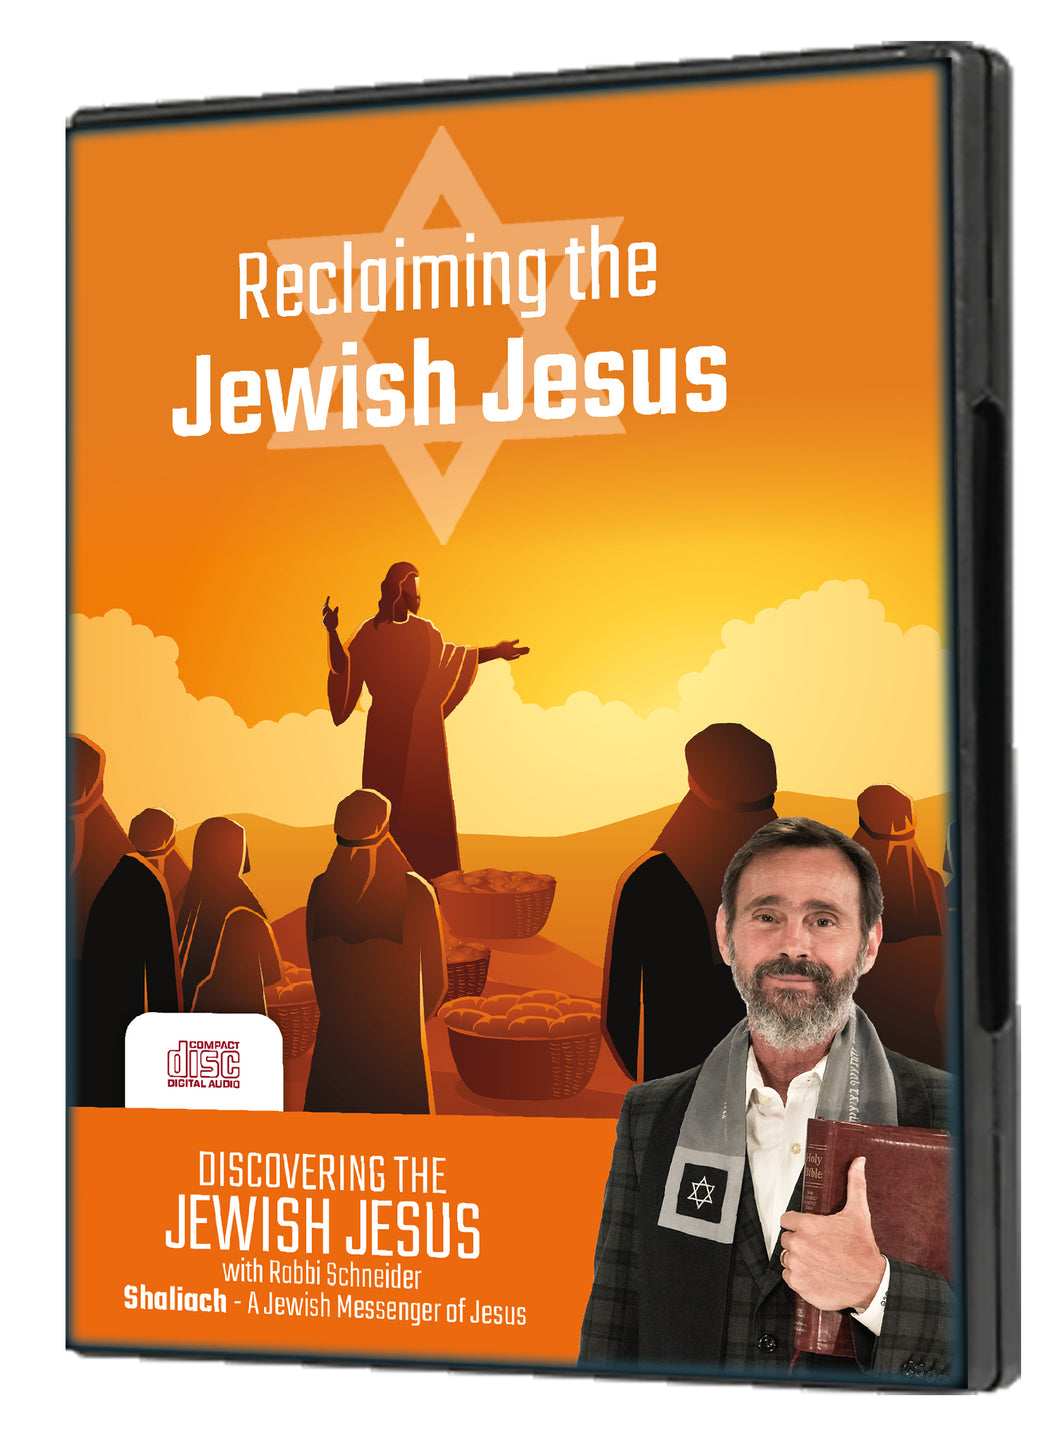 Reclaiming the Jewish Jesus